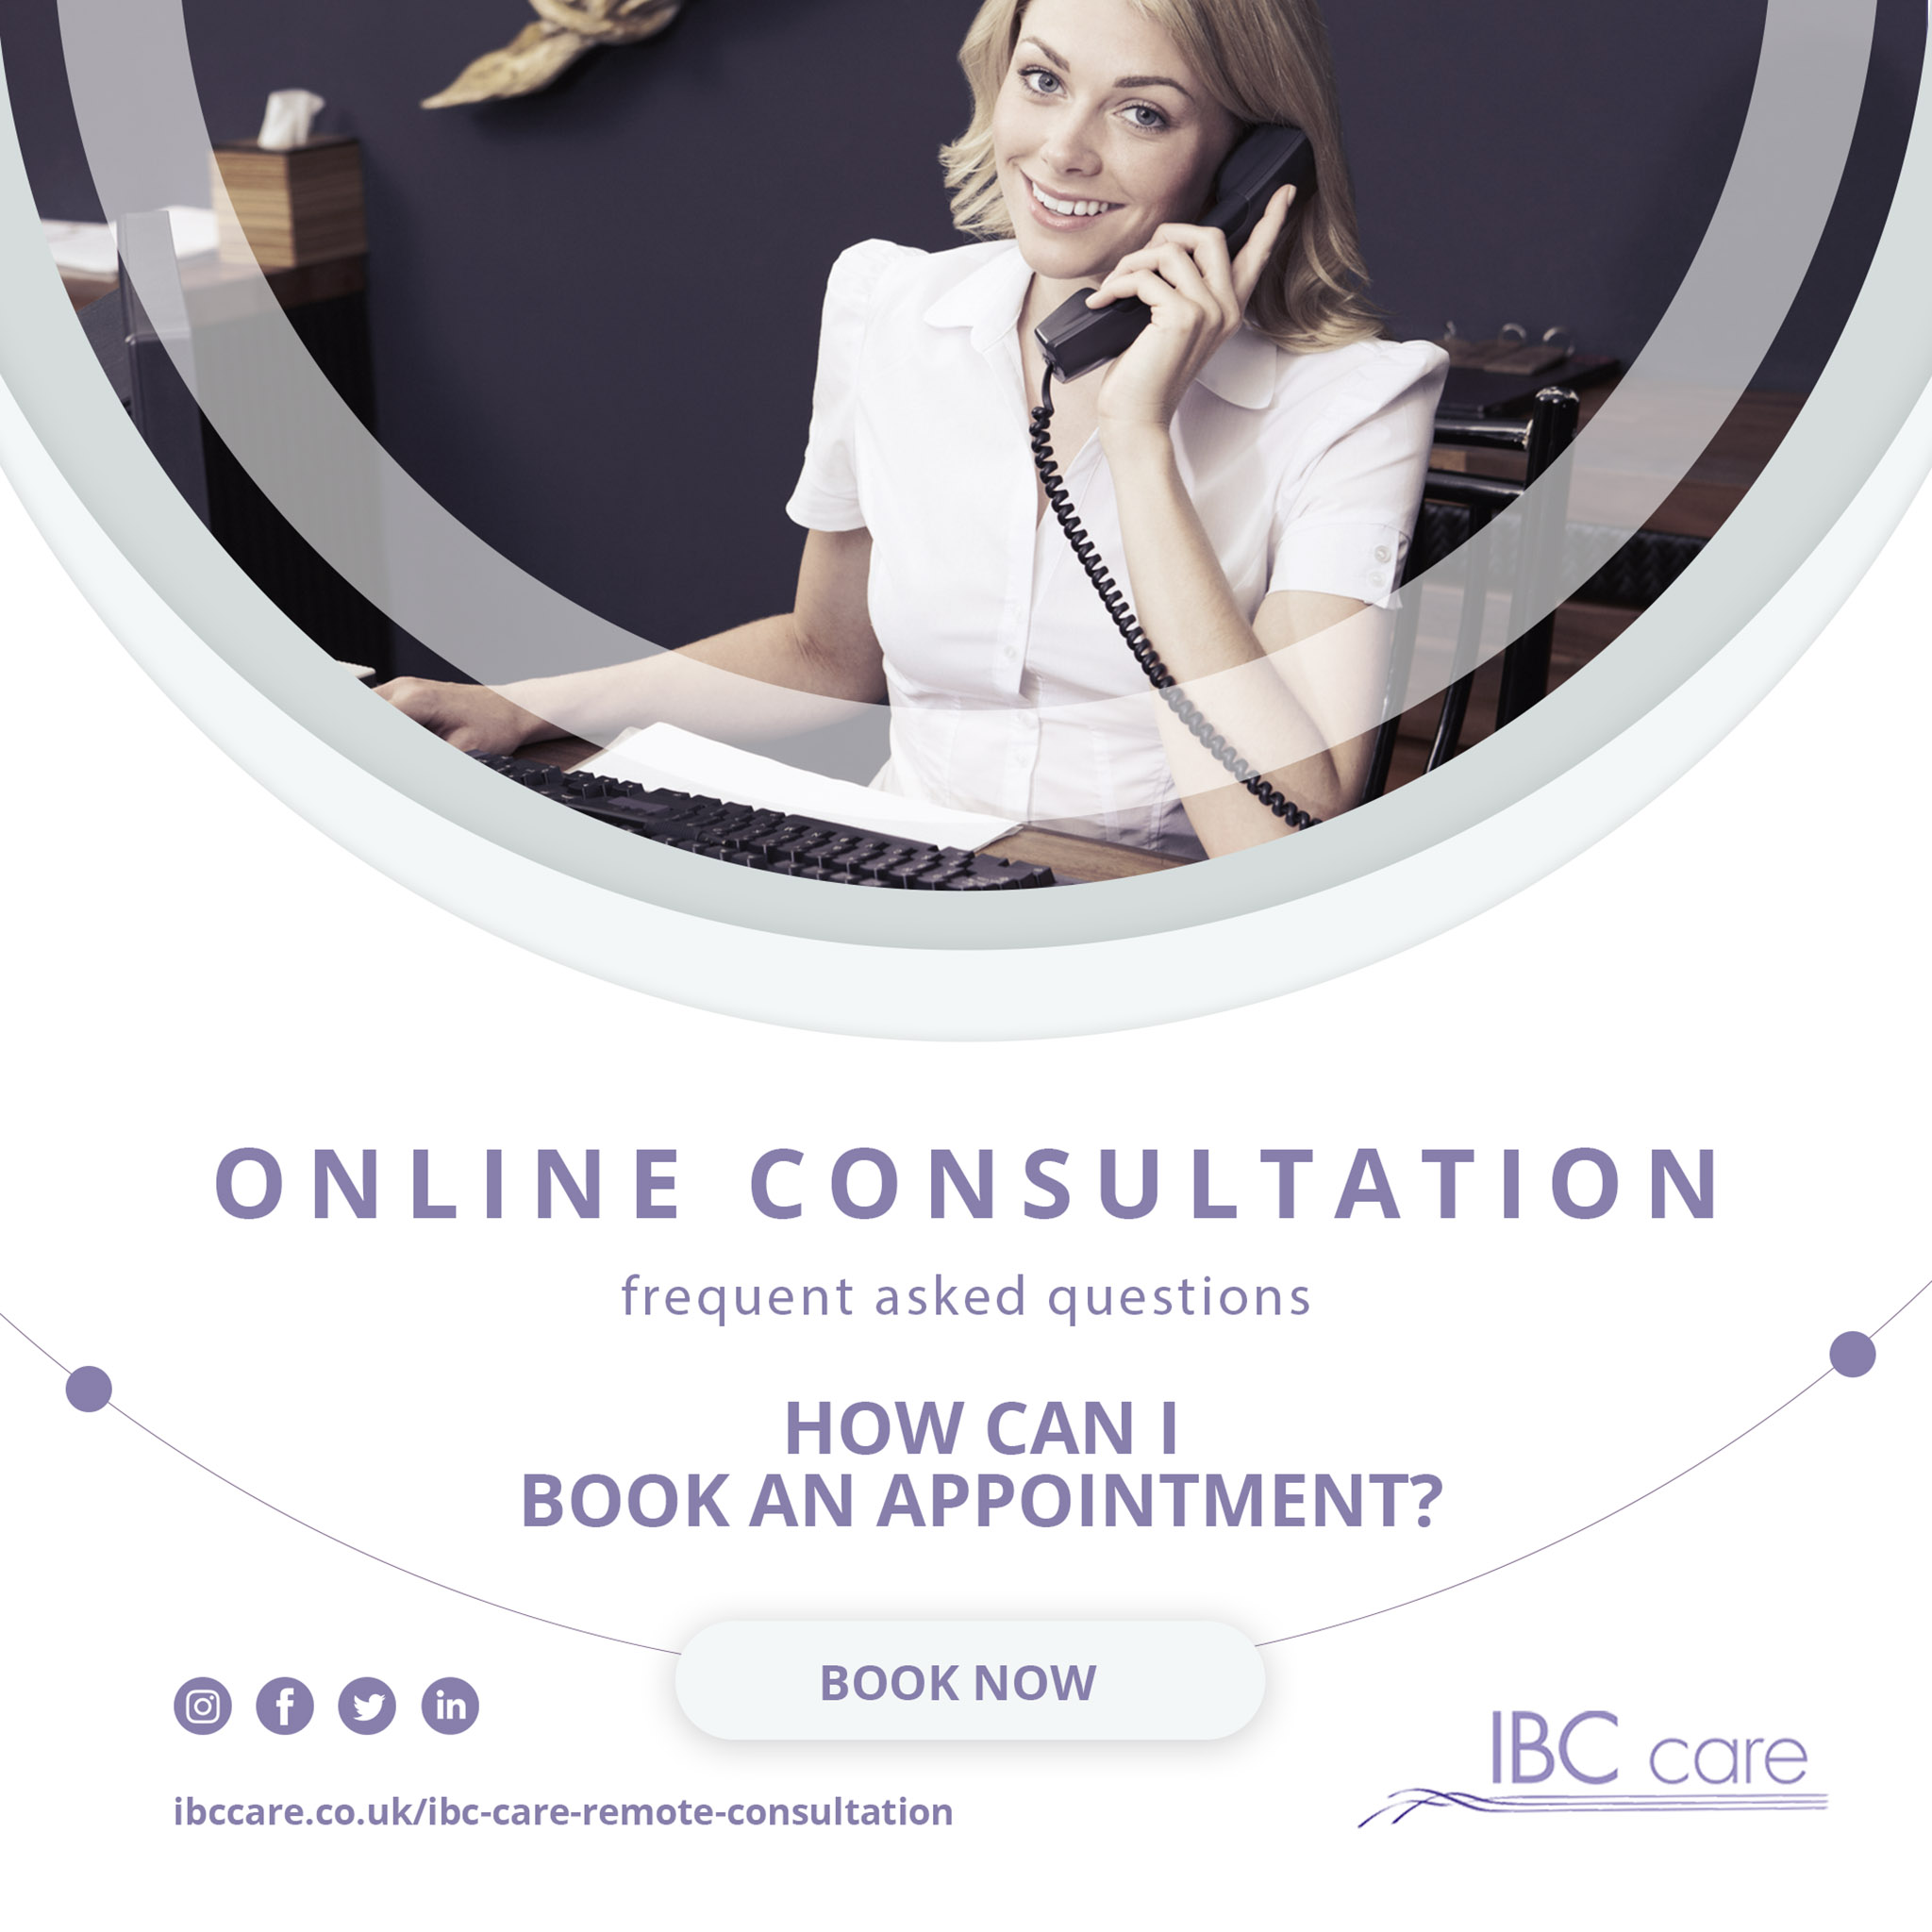 FAQ: How can I book an appointment?